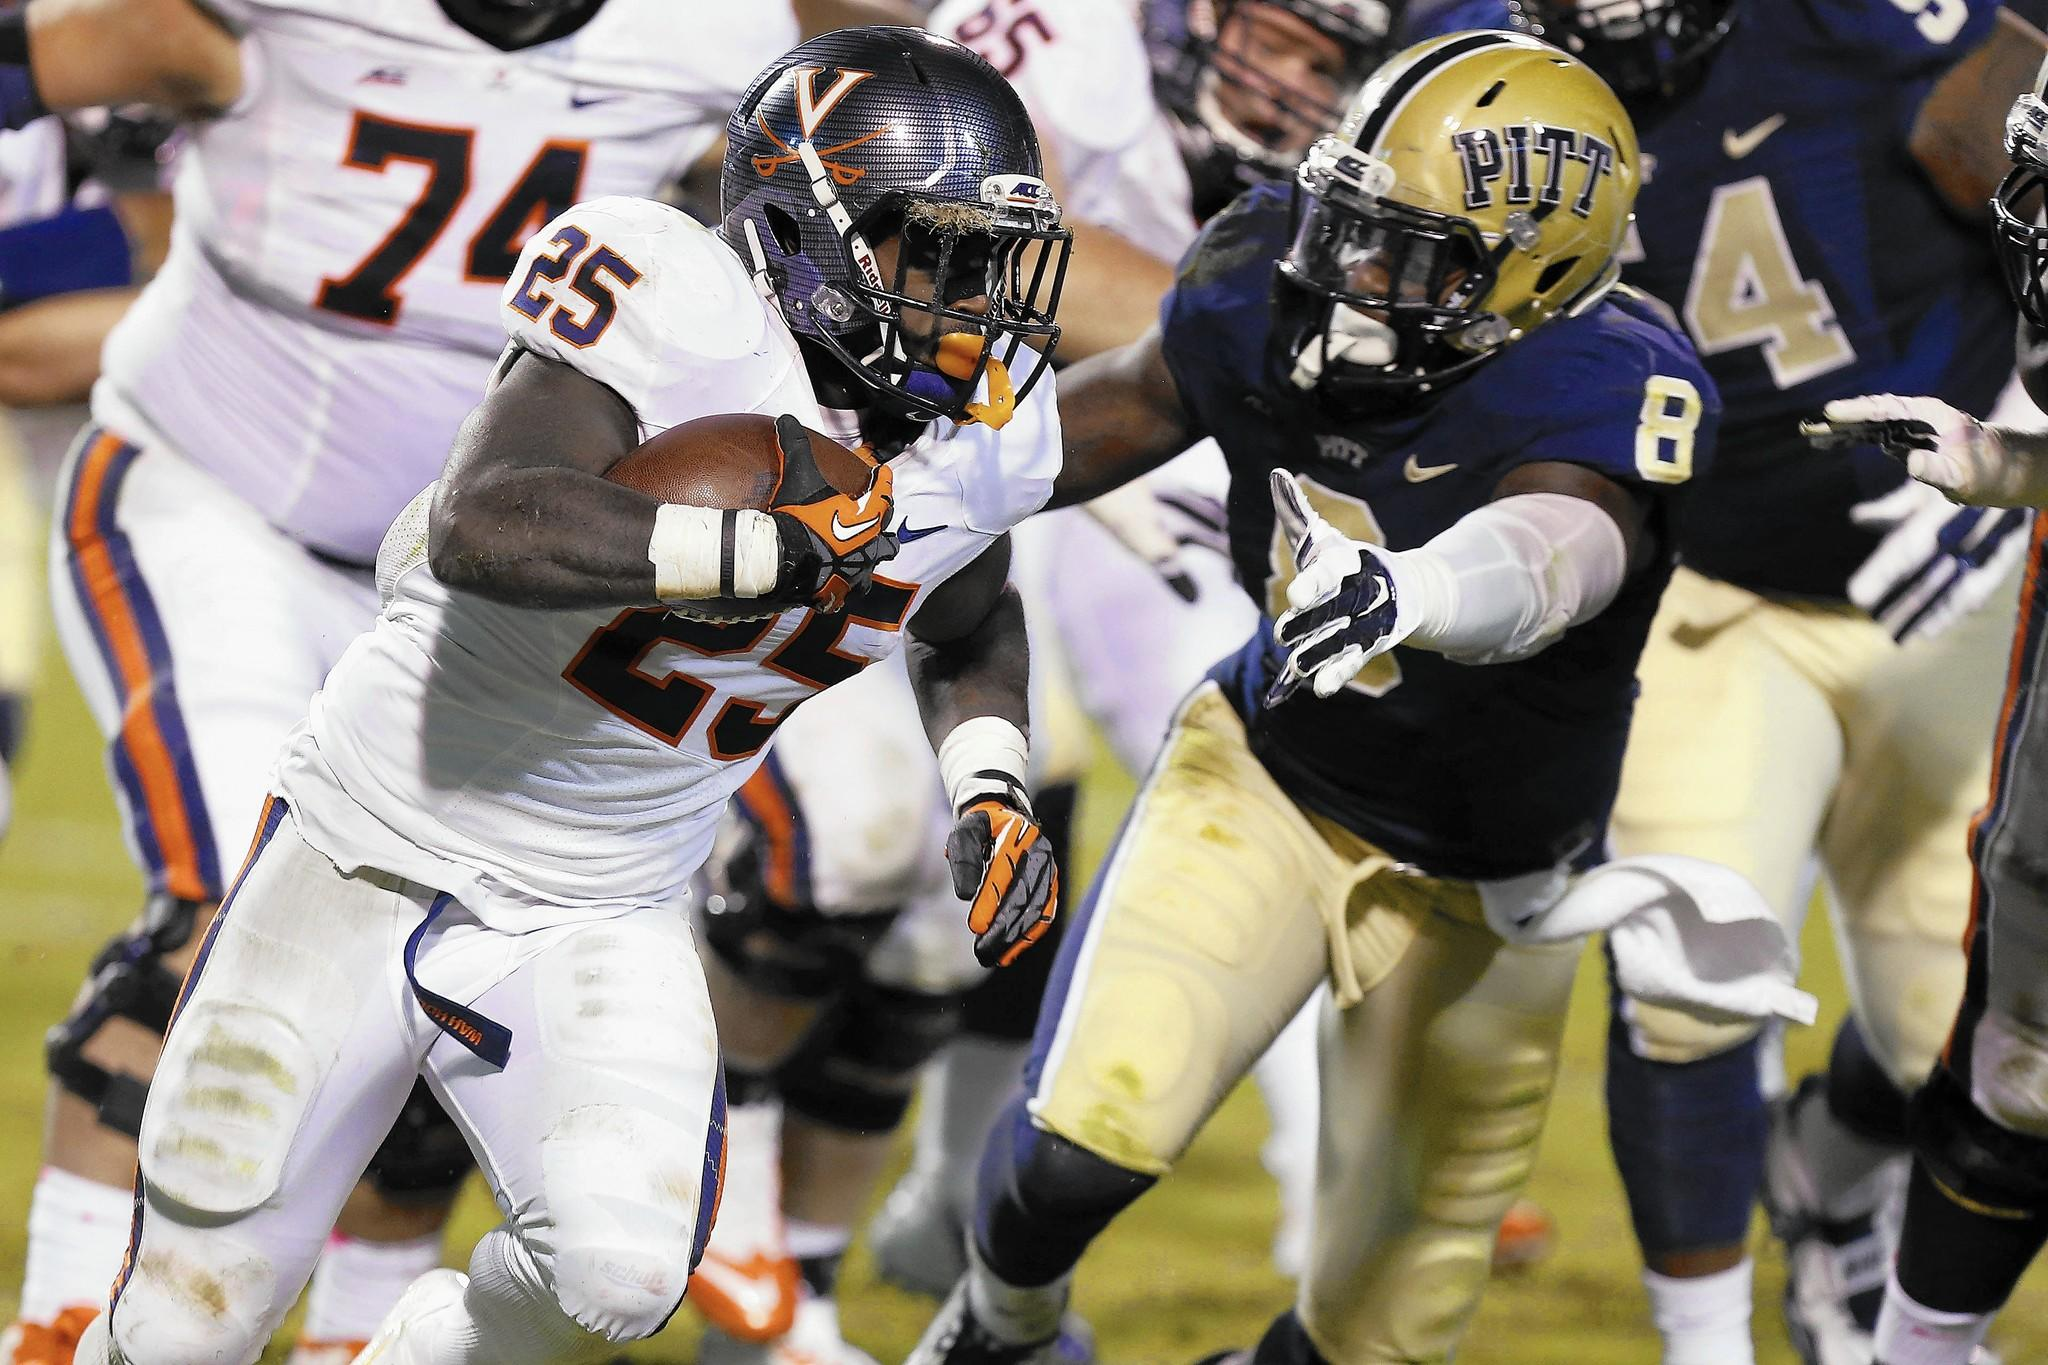 Virginia running back Kevin Parks carries the ball as Pittsburgh linebacker Todd Thomas defends Oct. 4 in Charlottesville.